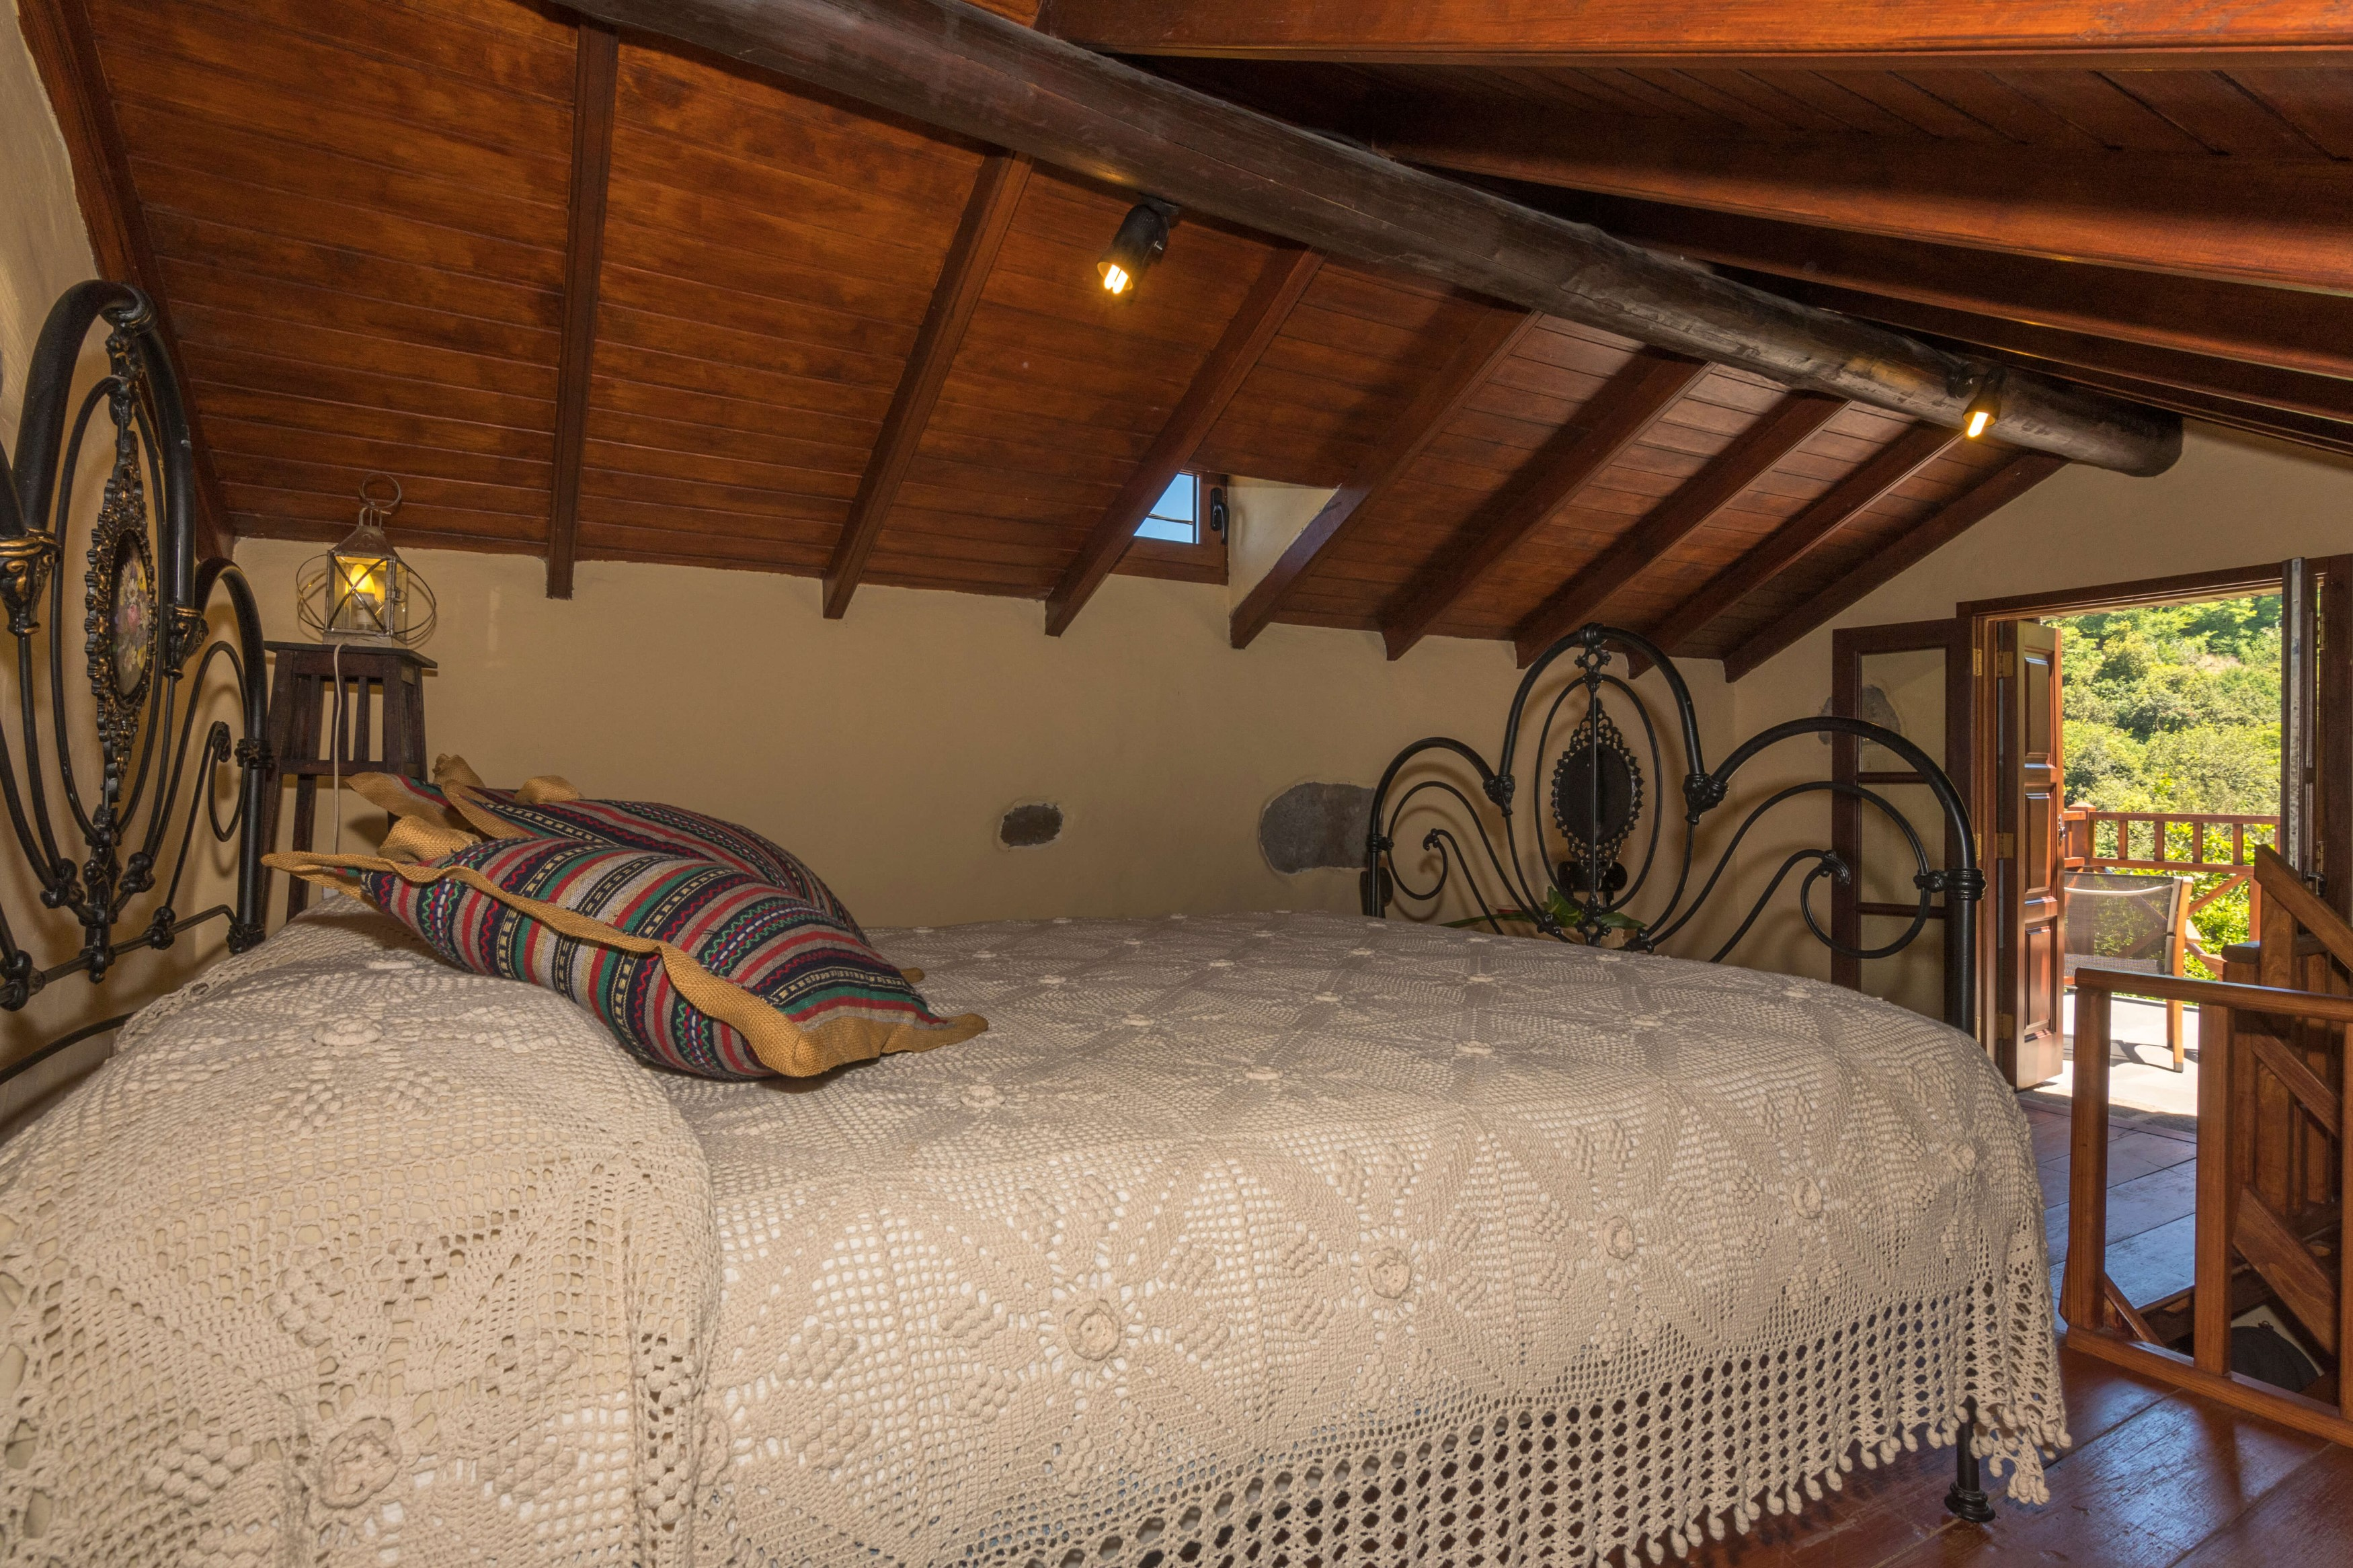 Maison de vacances House - 2 Bedrooms with Pool and WiFi - 106781 (2742990), San Fernando, Grande Canarie, Iles Canaries, Espagne, image 12